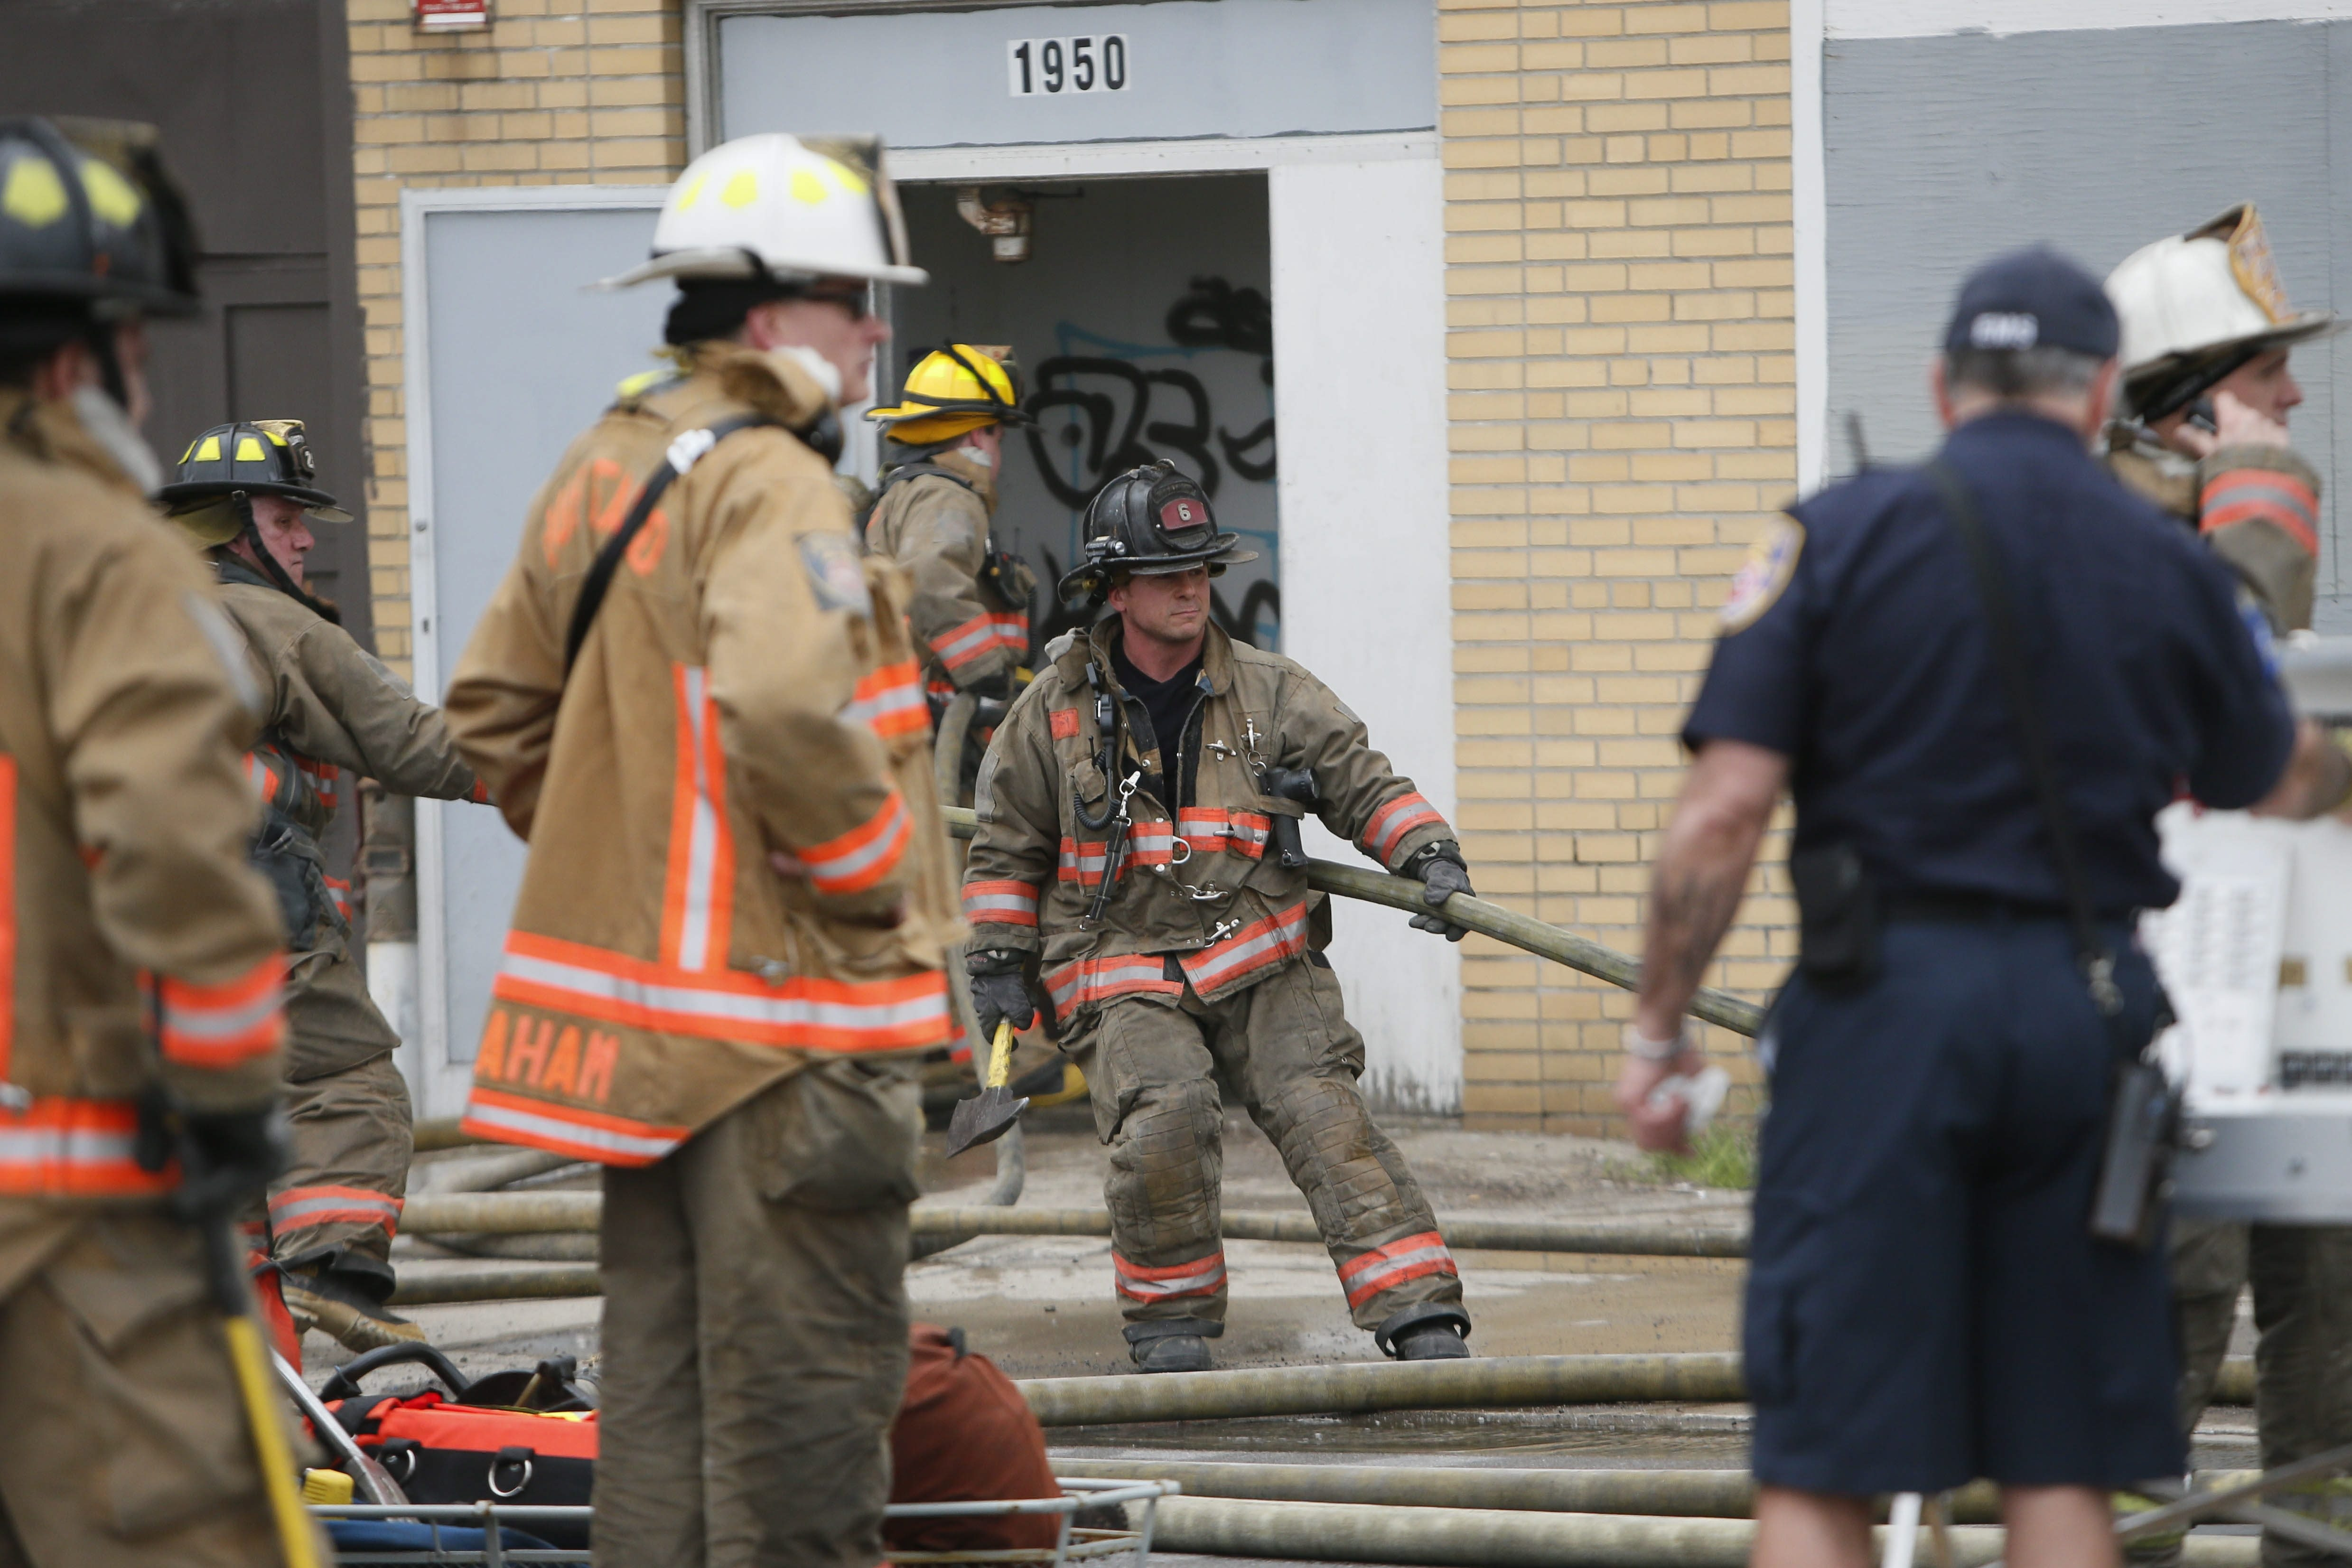 Buffalo firefighters respond to the fire at a vacant commercial building on Elmwood Avenue north of Hertel earlier today.